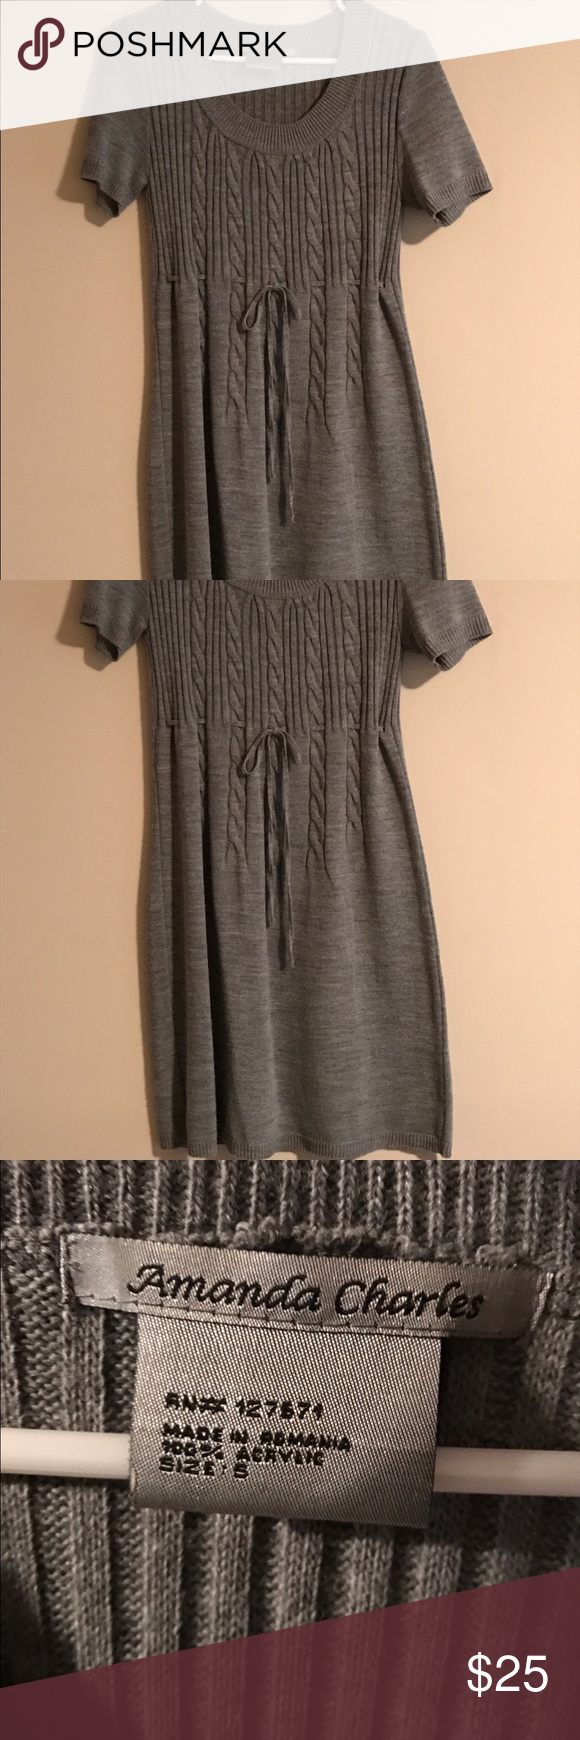 SWEATER DRESS- NEW CONDITION! CLOSET CLEANING!  All of my clothes are like new condition. I wash all of my clothes on gentle cycle in cold water and hang dry. The clothes that I have listed are not faded and some only need an iron. Amanda Charles Dresses